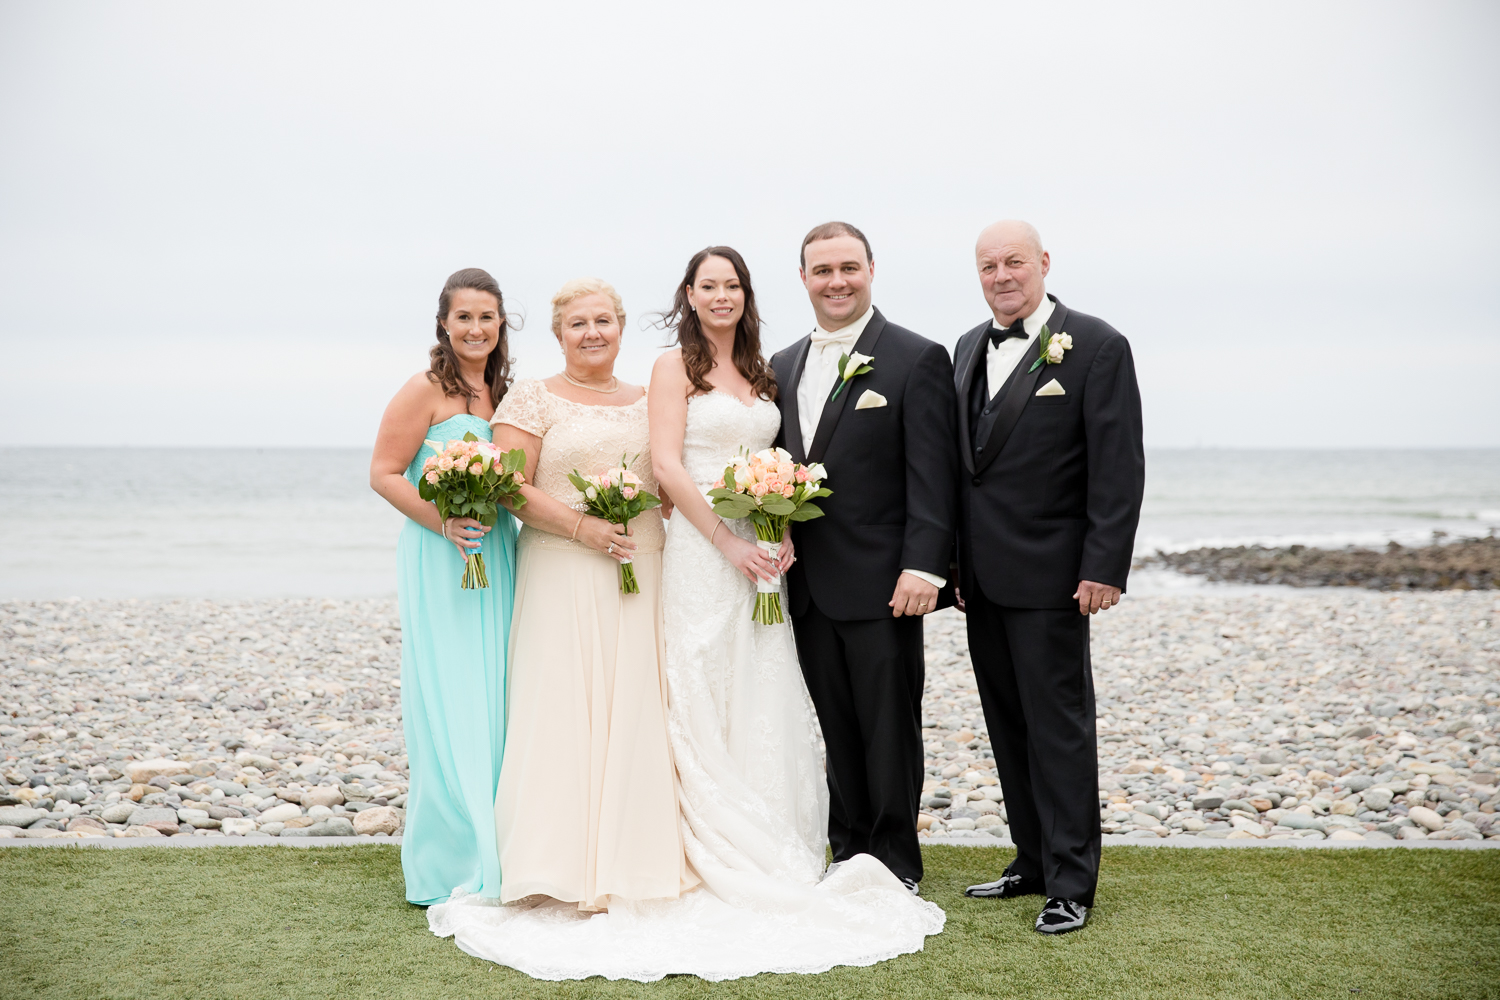 oceanview-of-nahant-wedding-26-north-studios-42.jpg